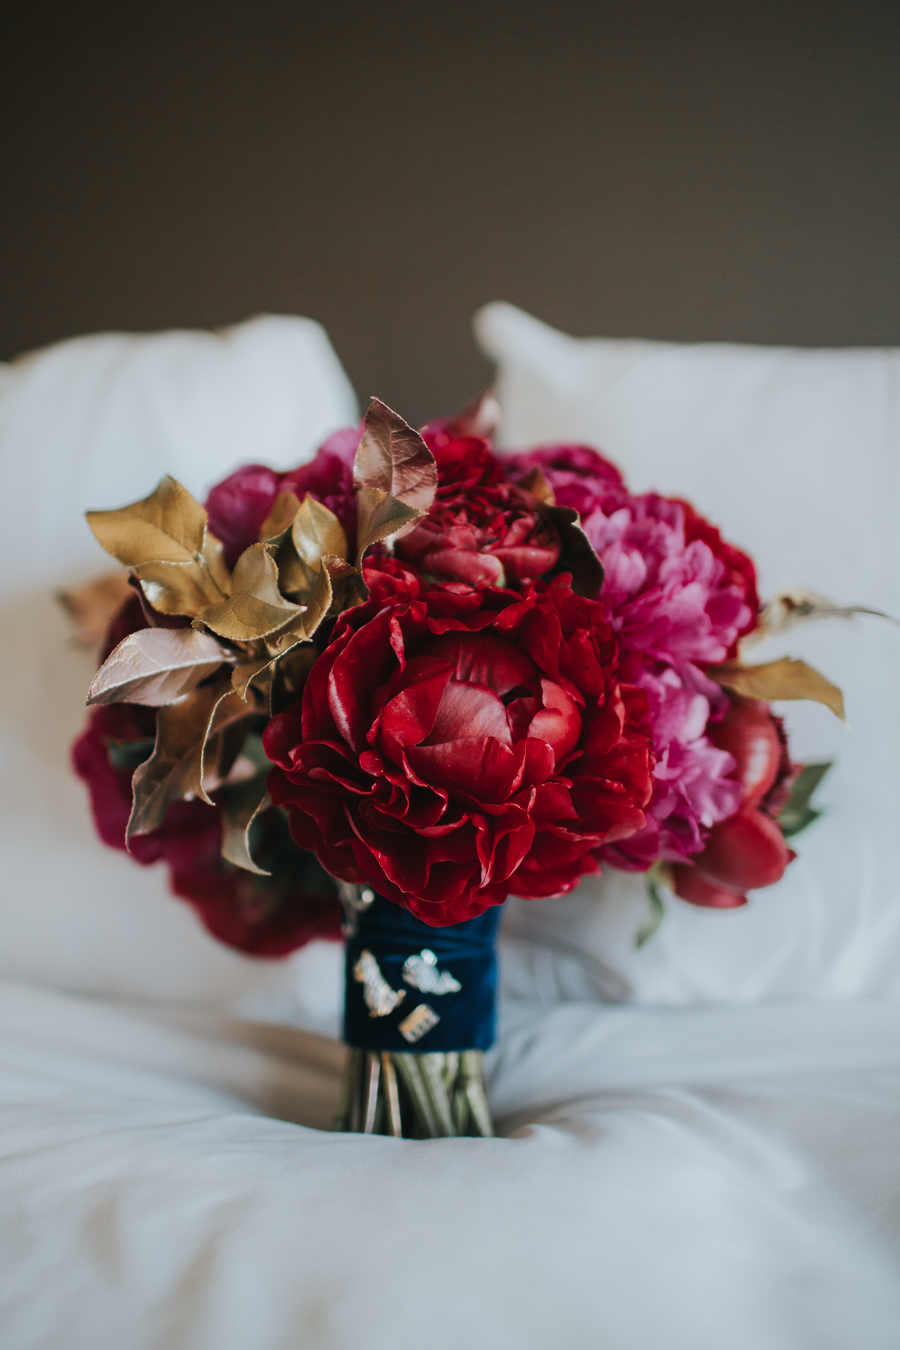 Loren and Alex Kuznetsov Gold and Burgundy wedding at Epicurean Tampa Royal Fall Wedding in Tampa Florida Inside Weddings MD Events Tampa-4.jpg